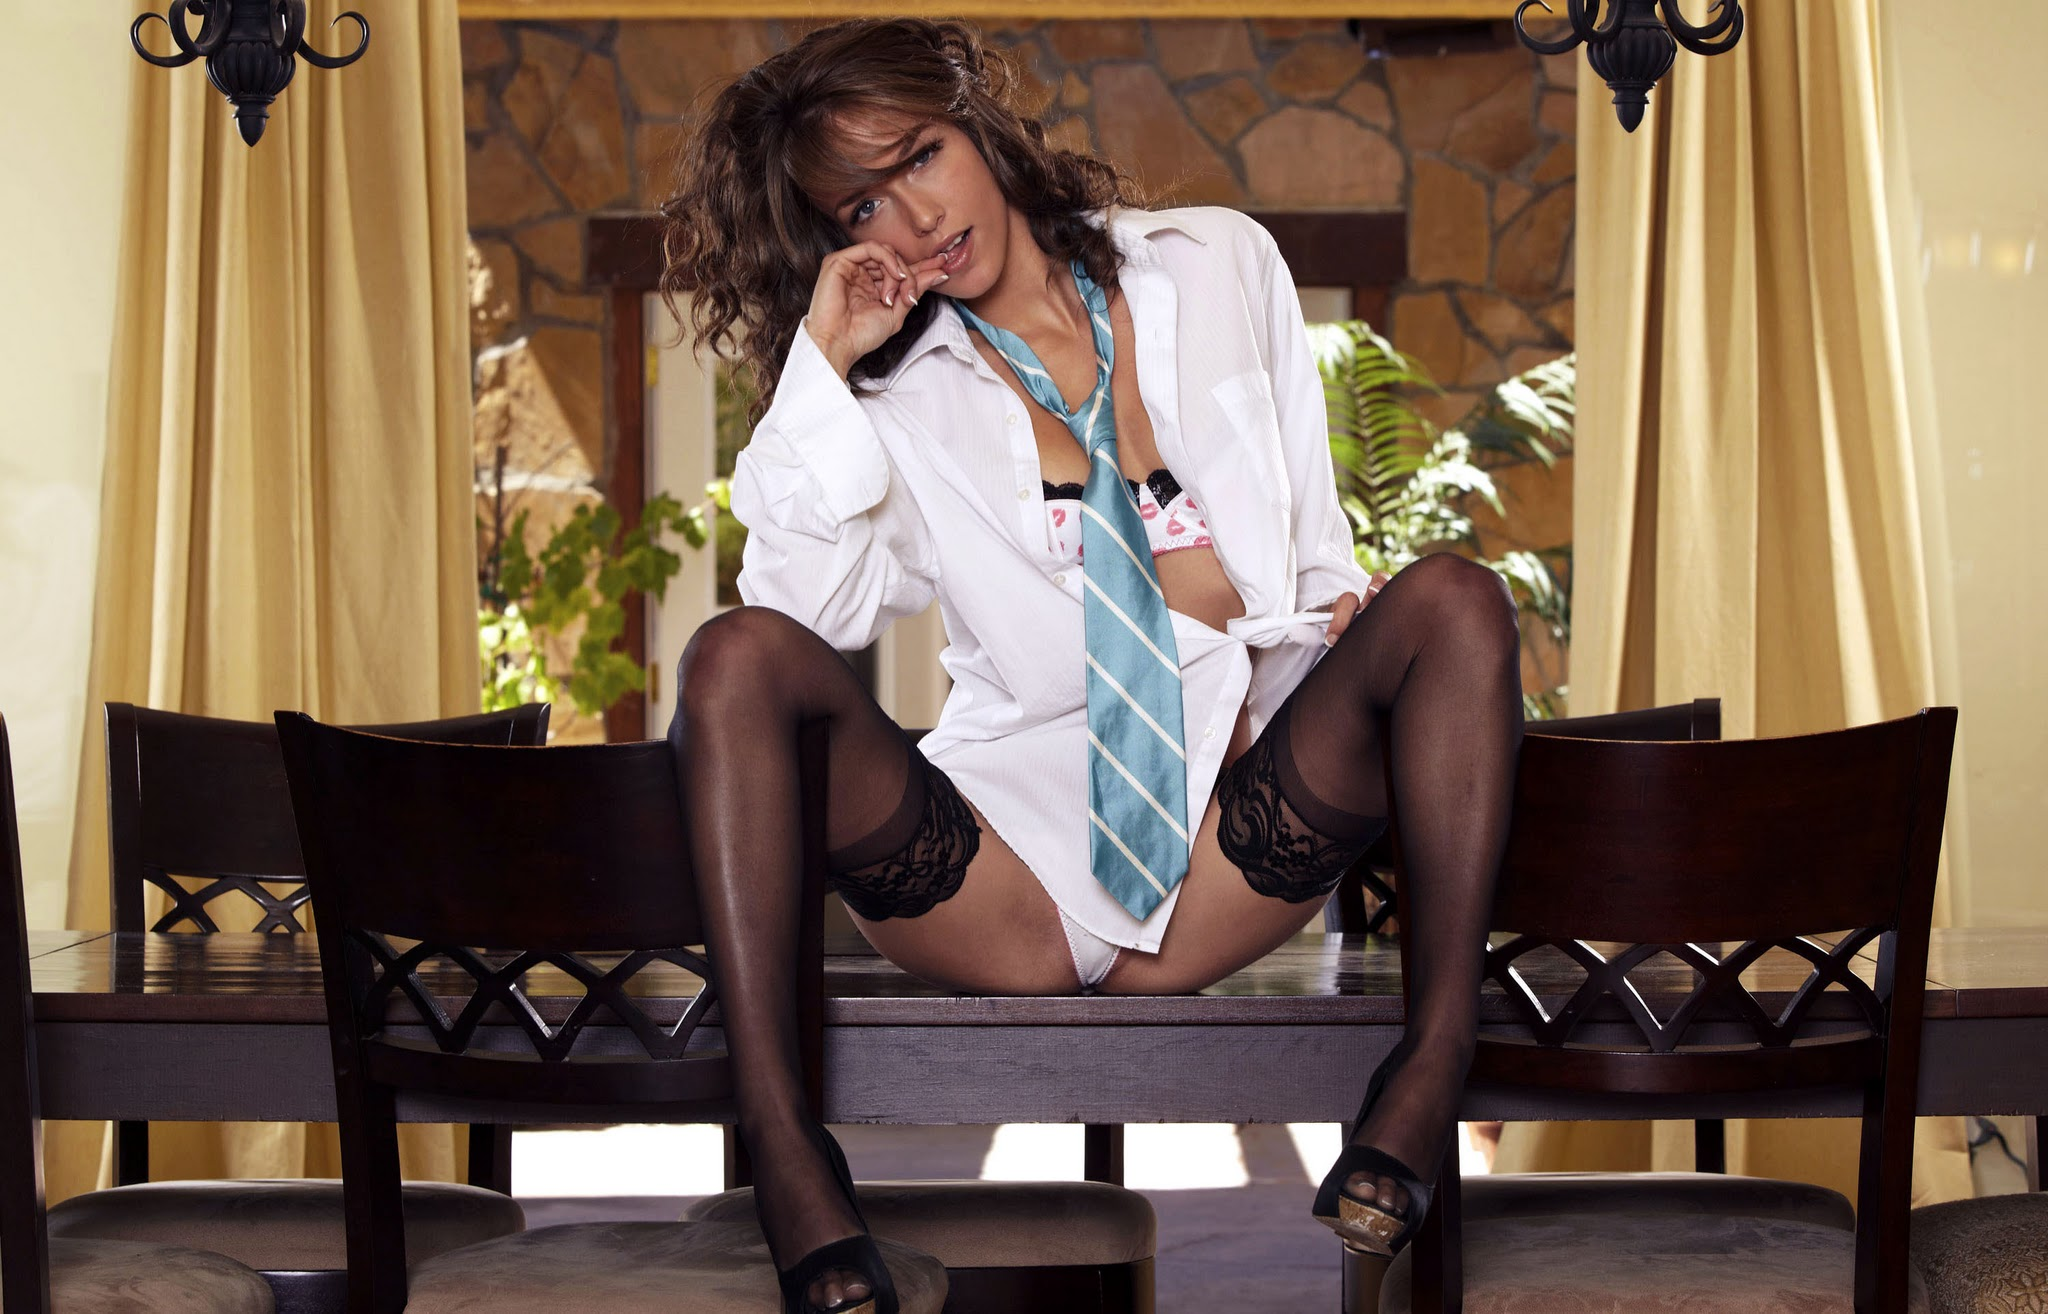 Woman in a Man's dress shirt and stockings